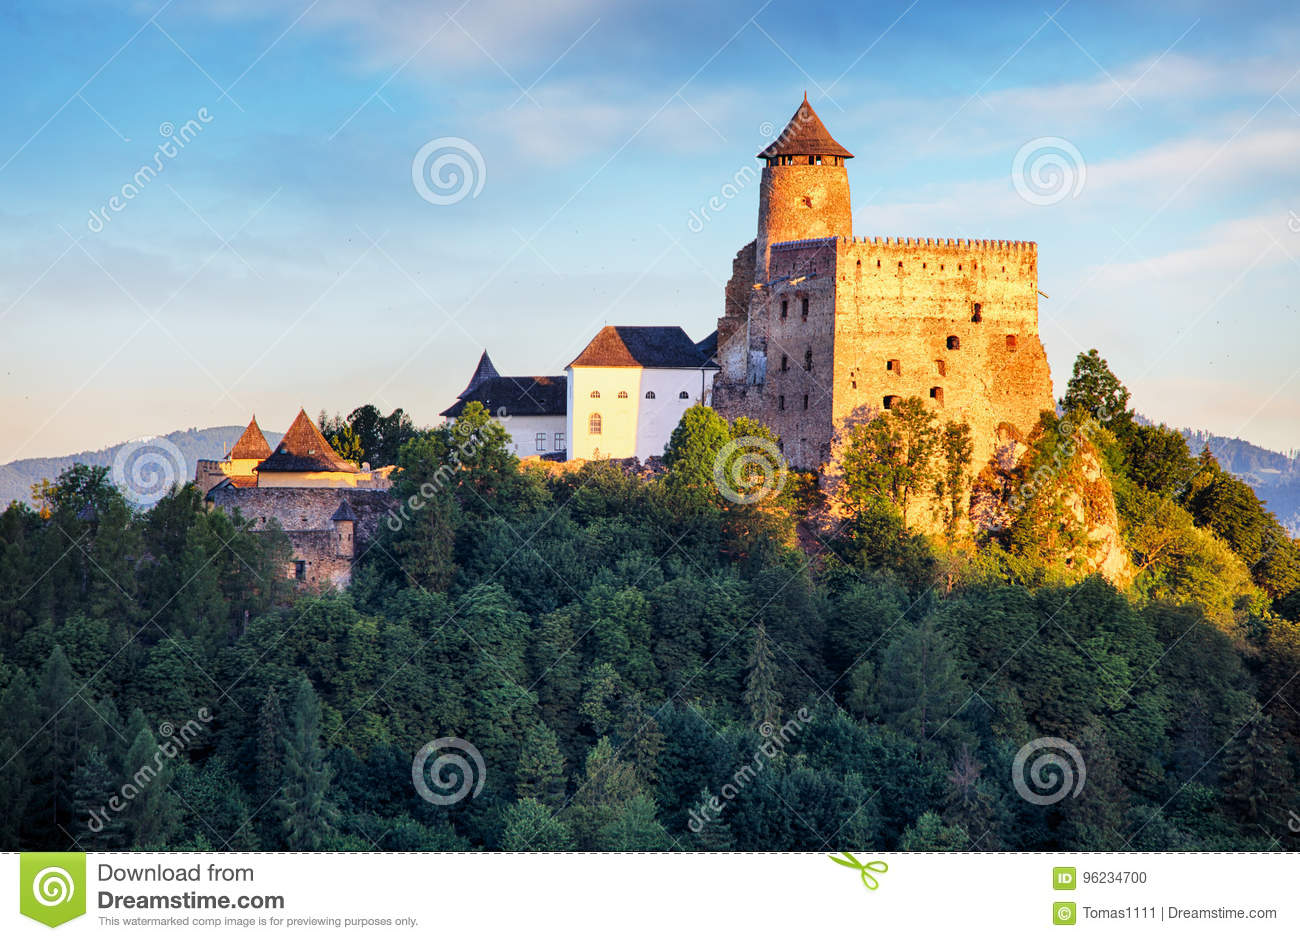 Stara Lubovna castle in Slovakia, Europe landmark